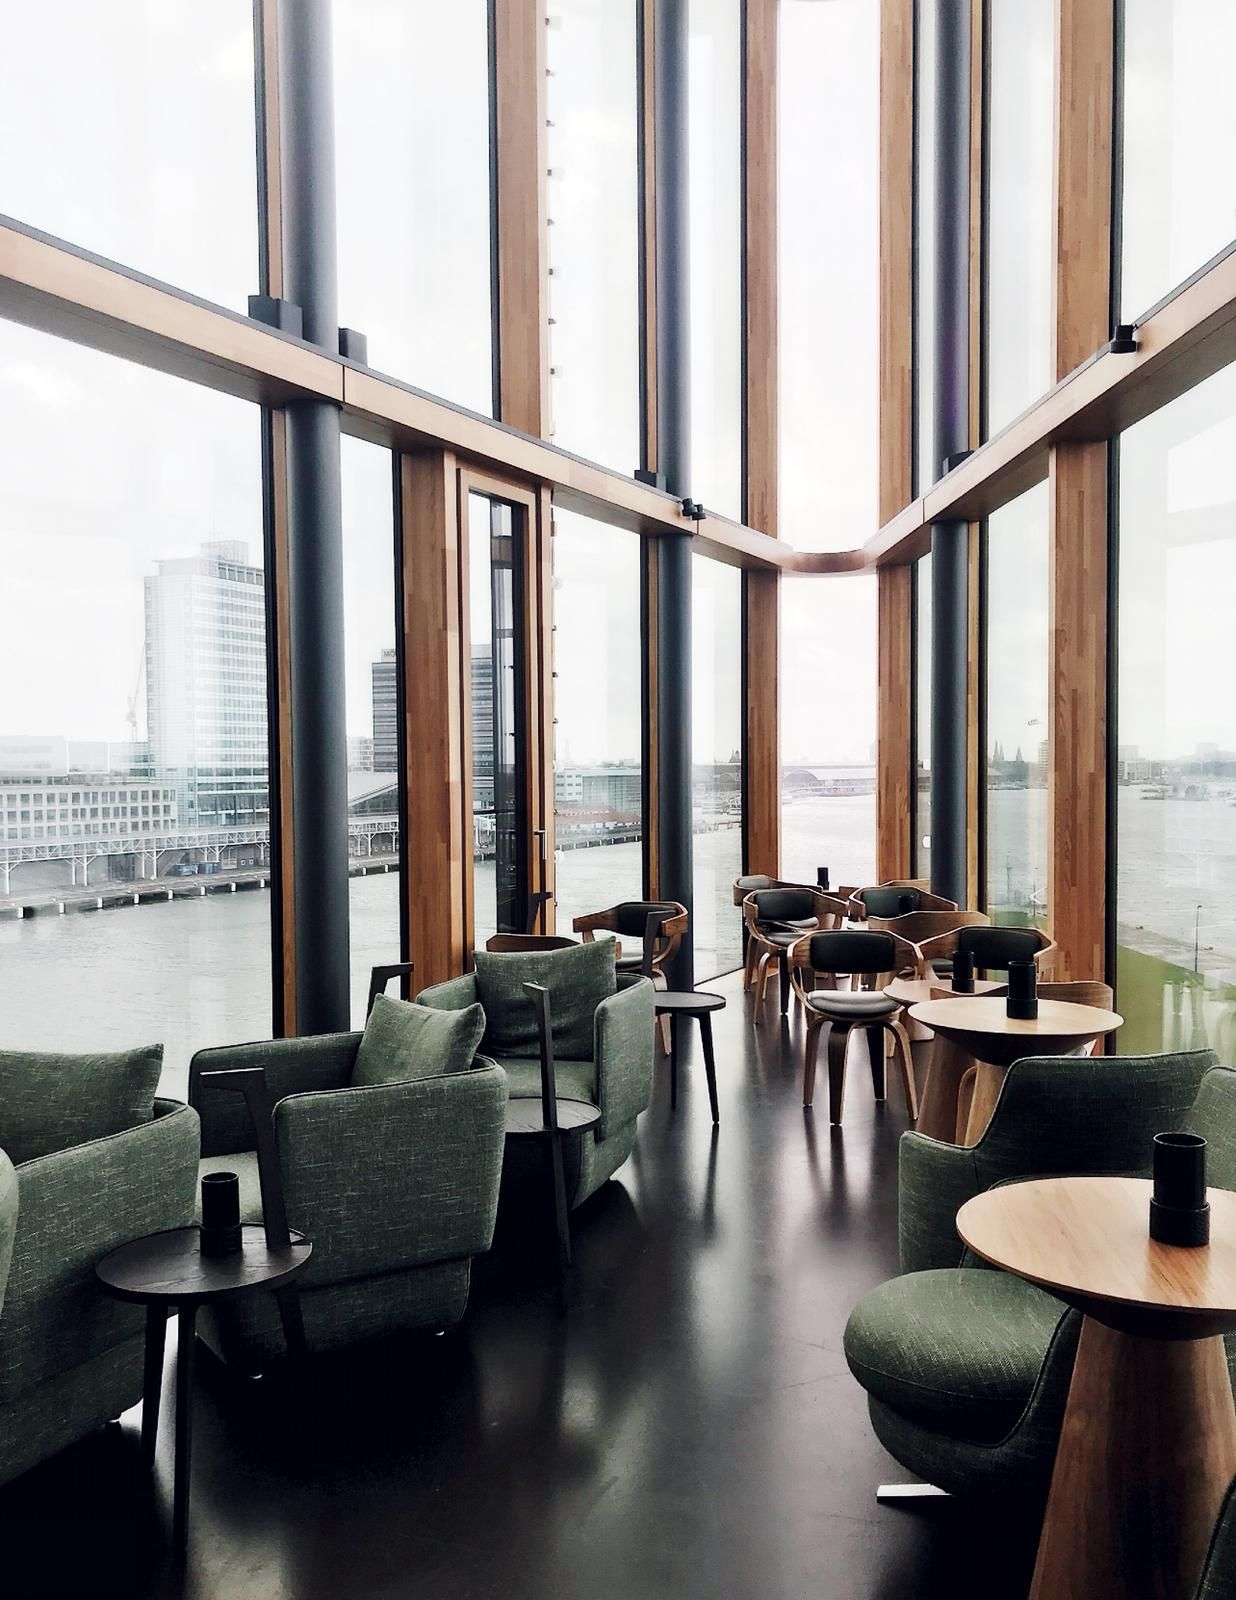 Sustainable Hotel Jakarta Amsterdam April And May Hotel Amsterdam Hotel Luxury Leisure